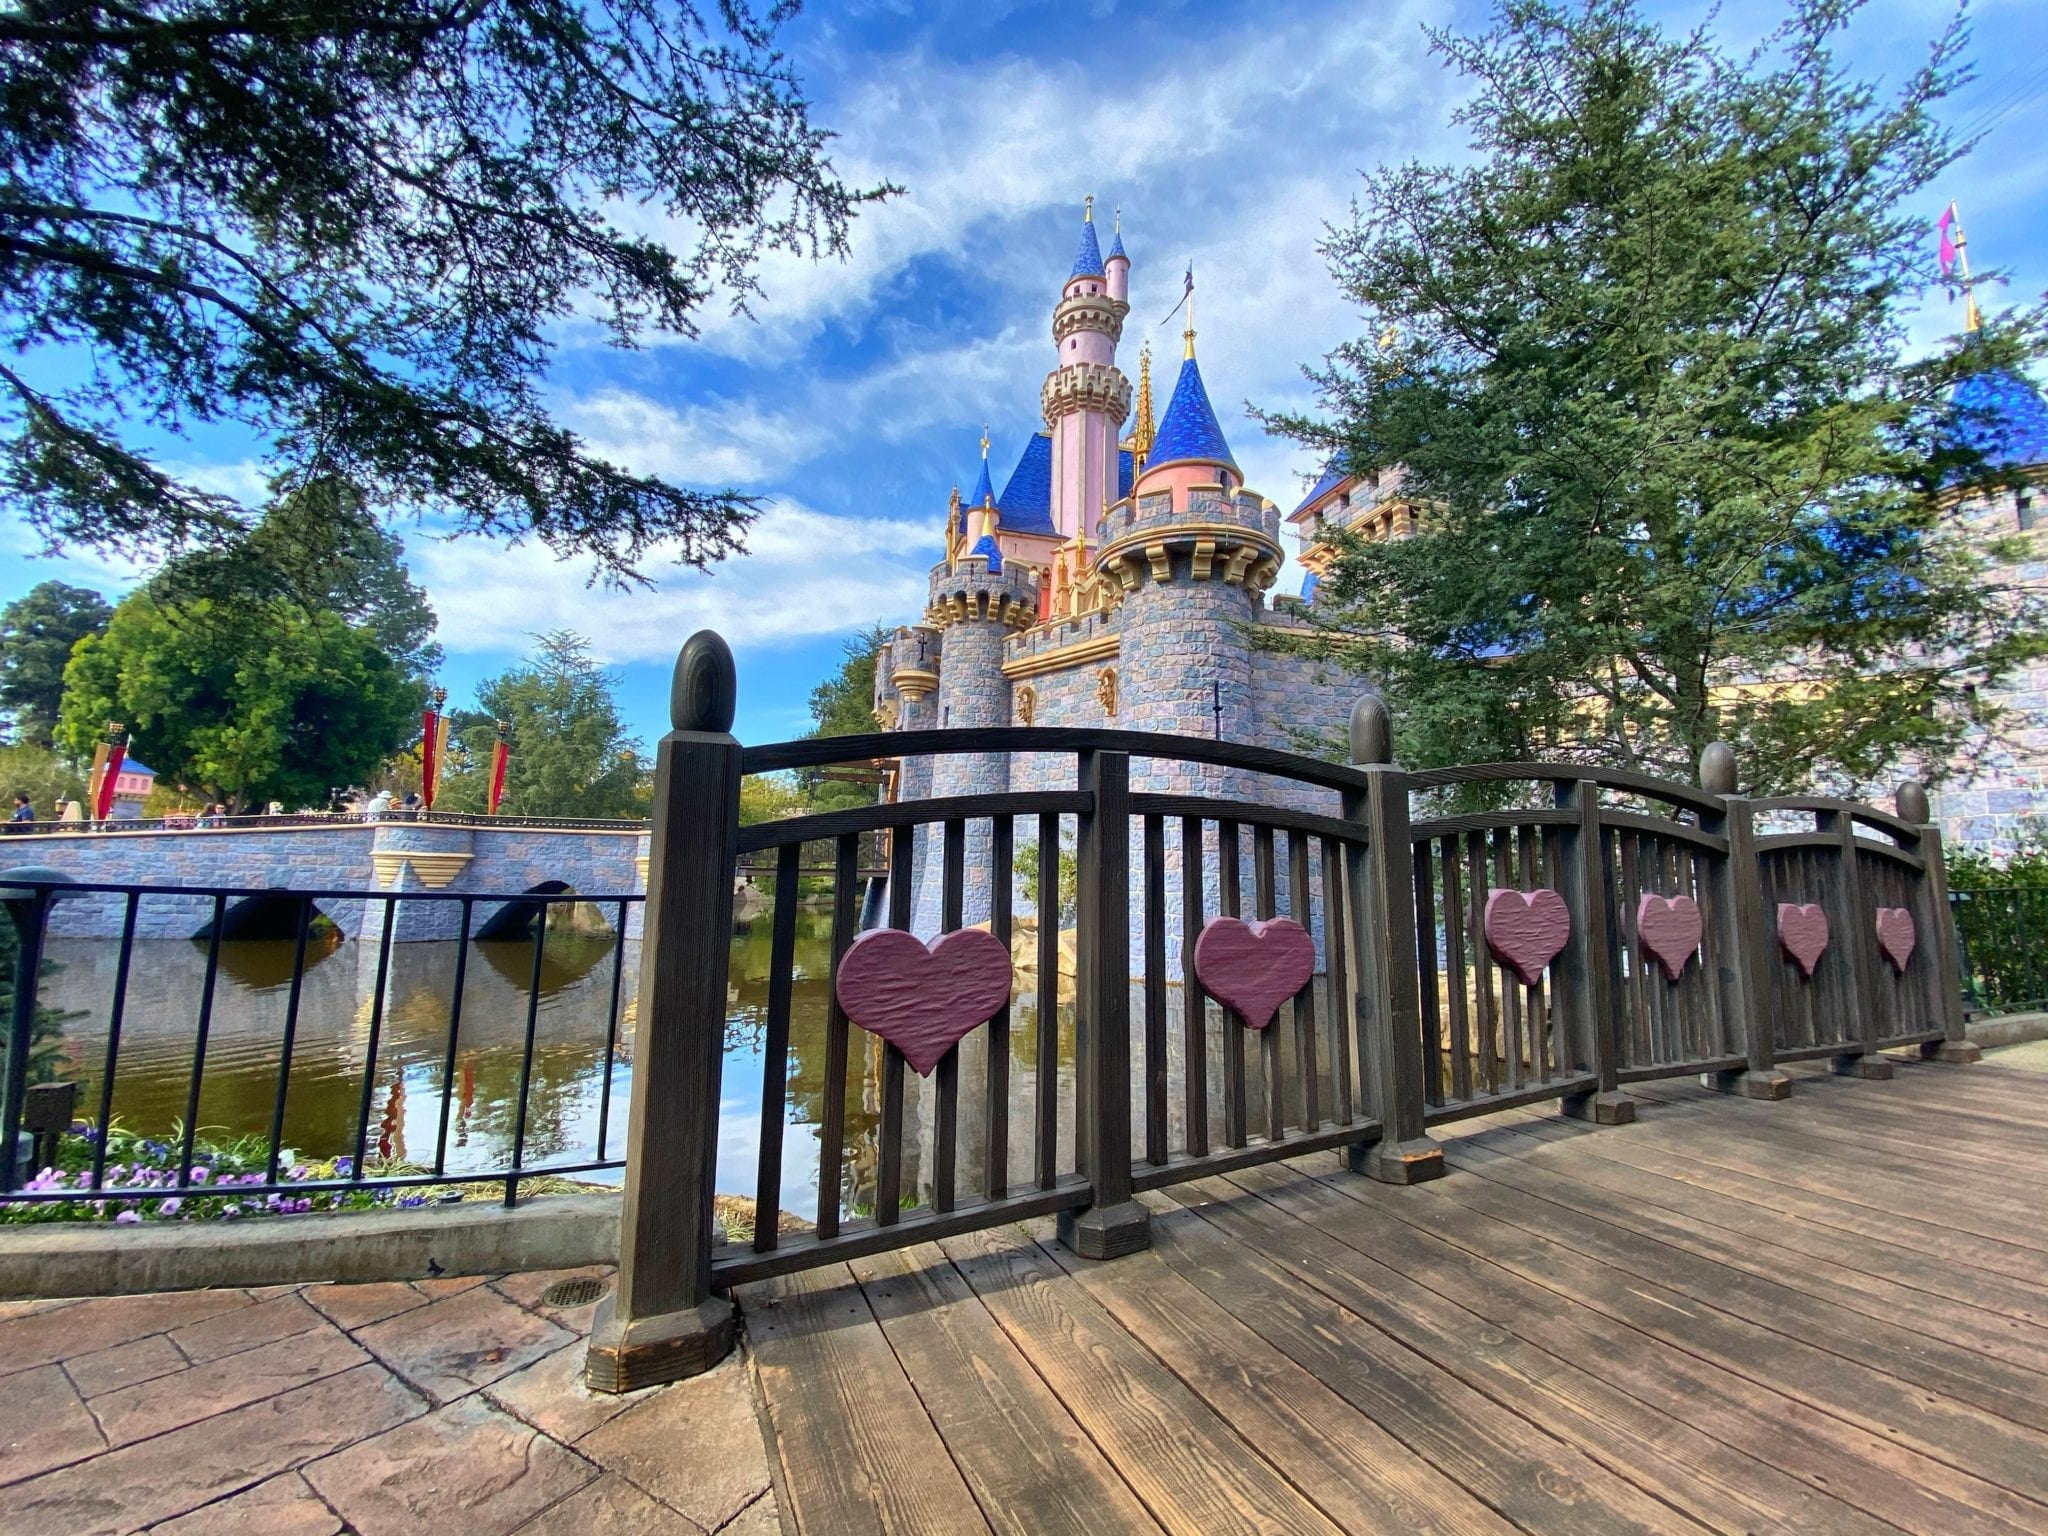 BREAKING: Disneyland Resort To Reopen April 30th